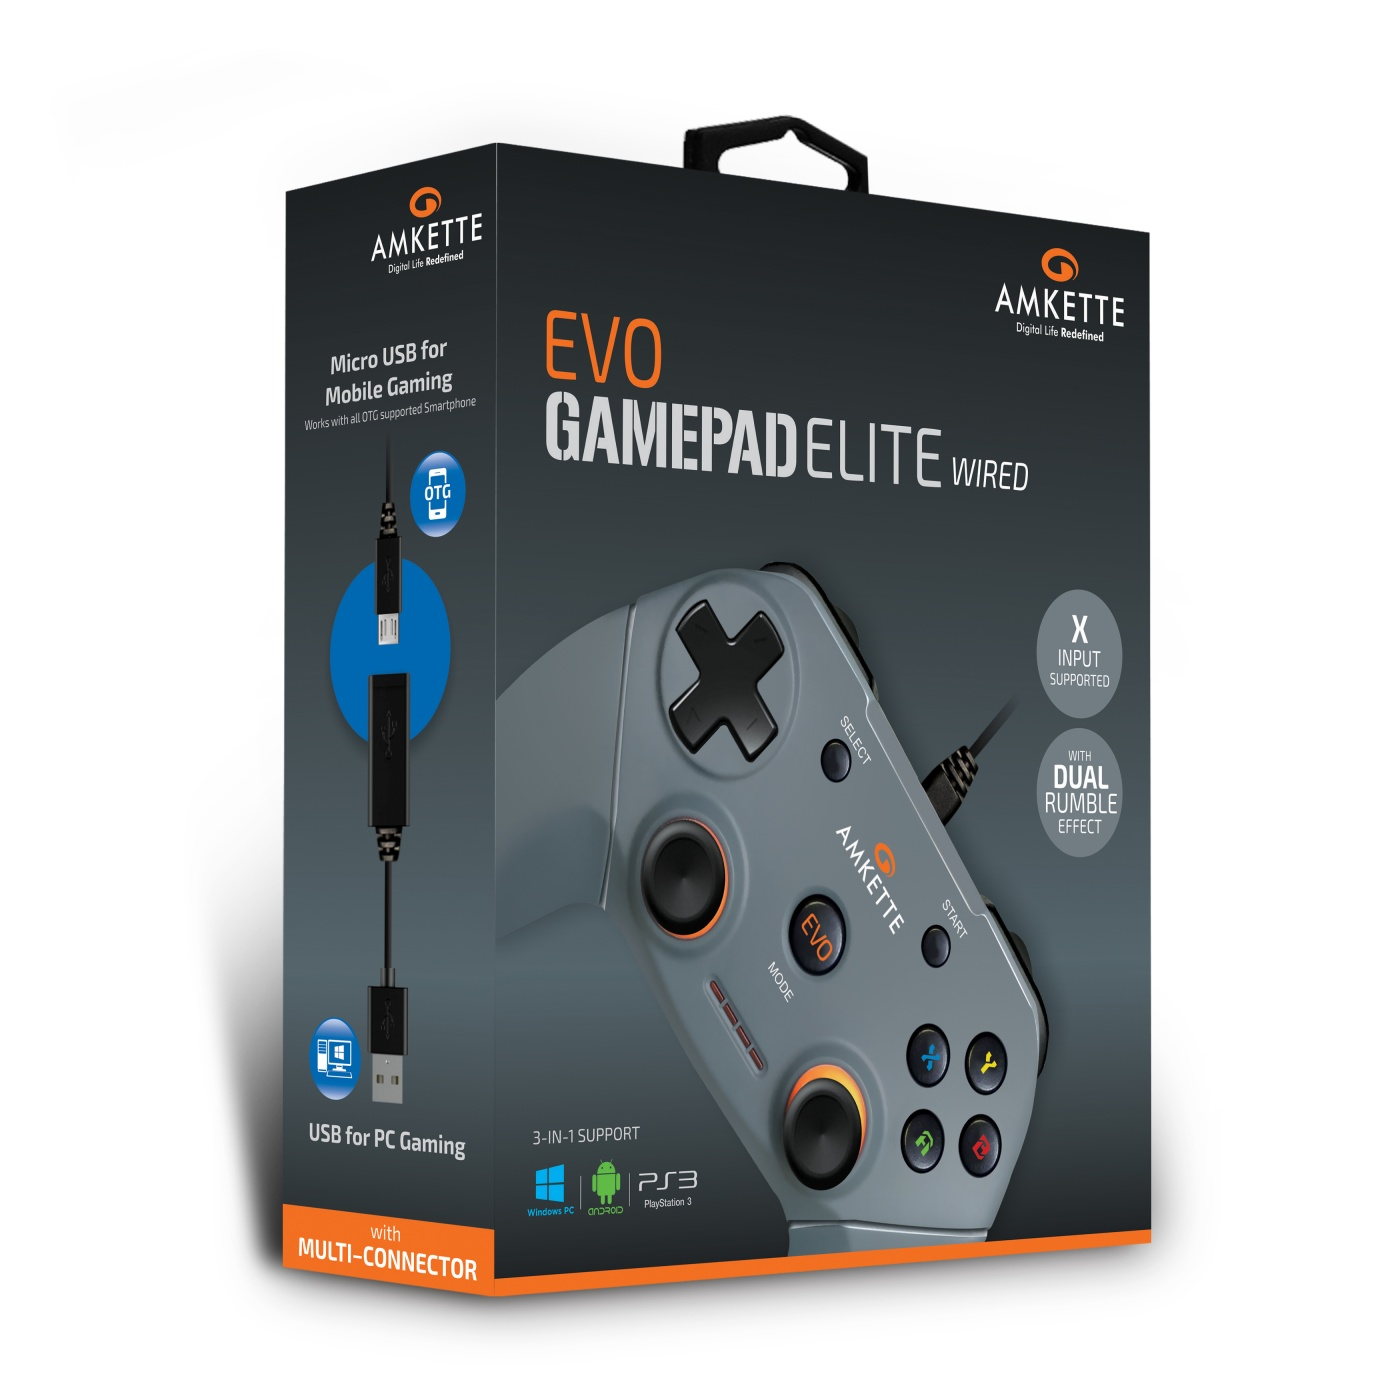 EVO Elite Wired | Wired PC Gamepad | Amkette com